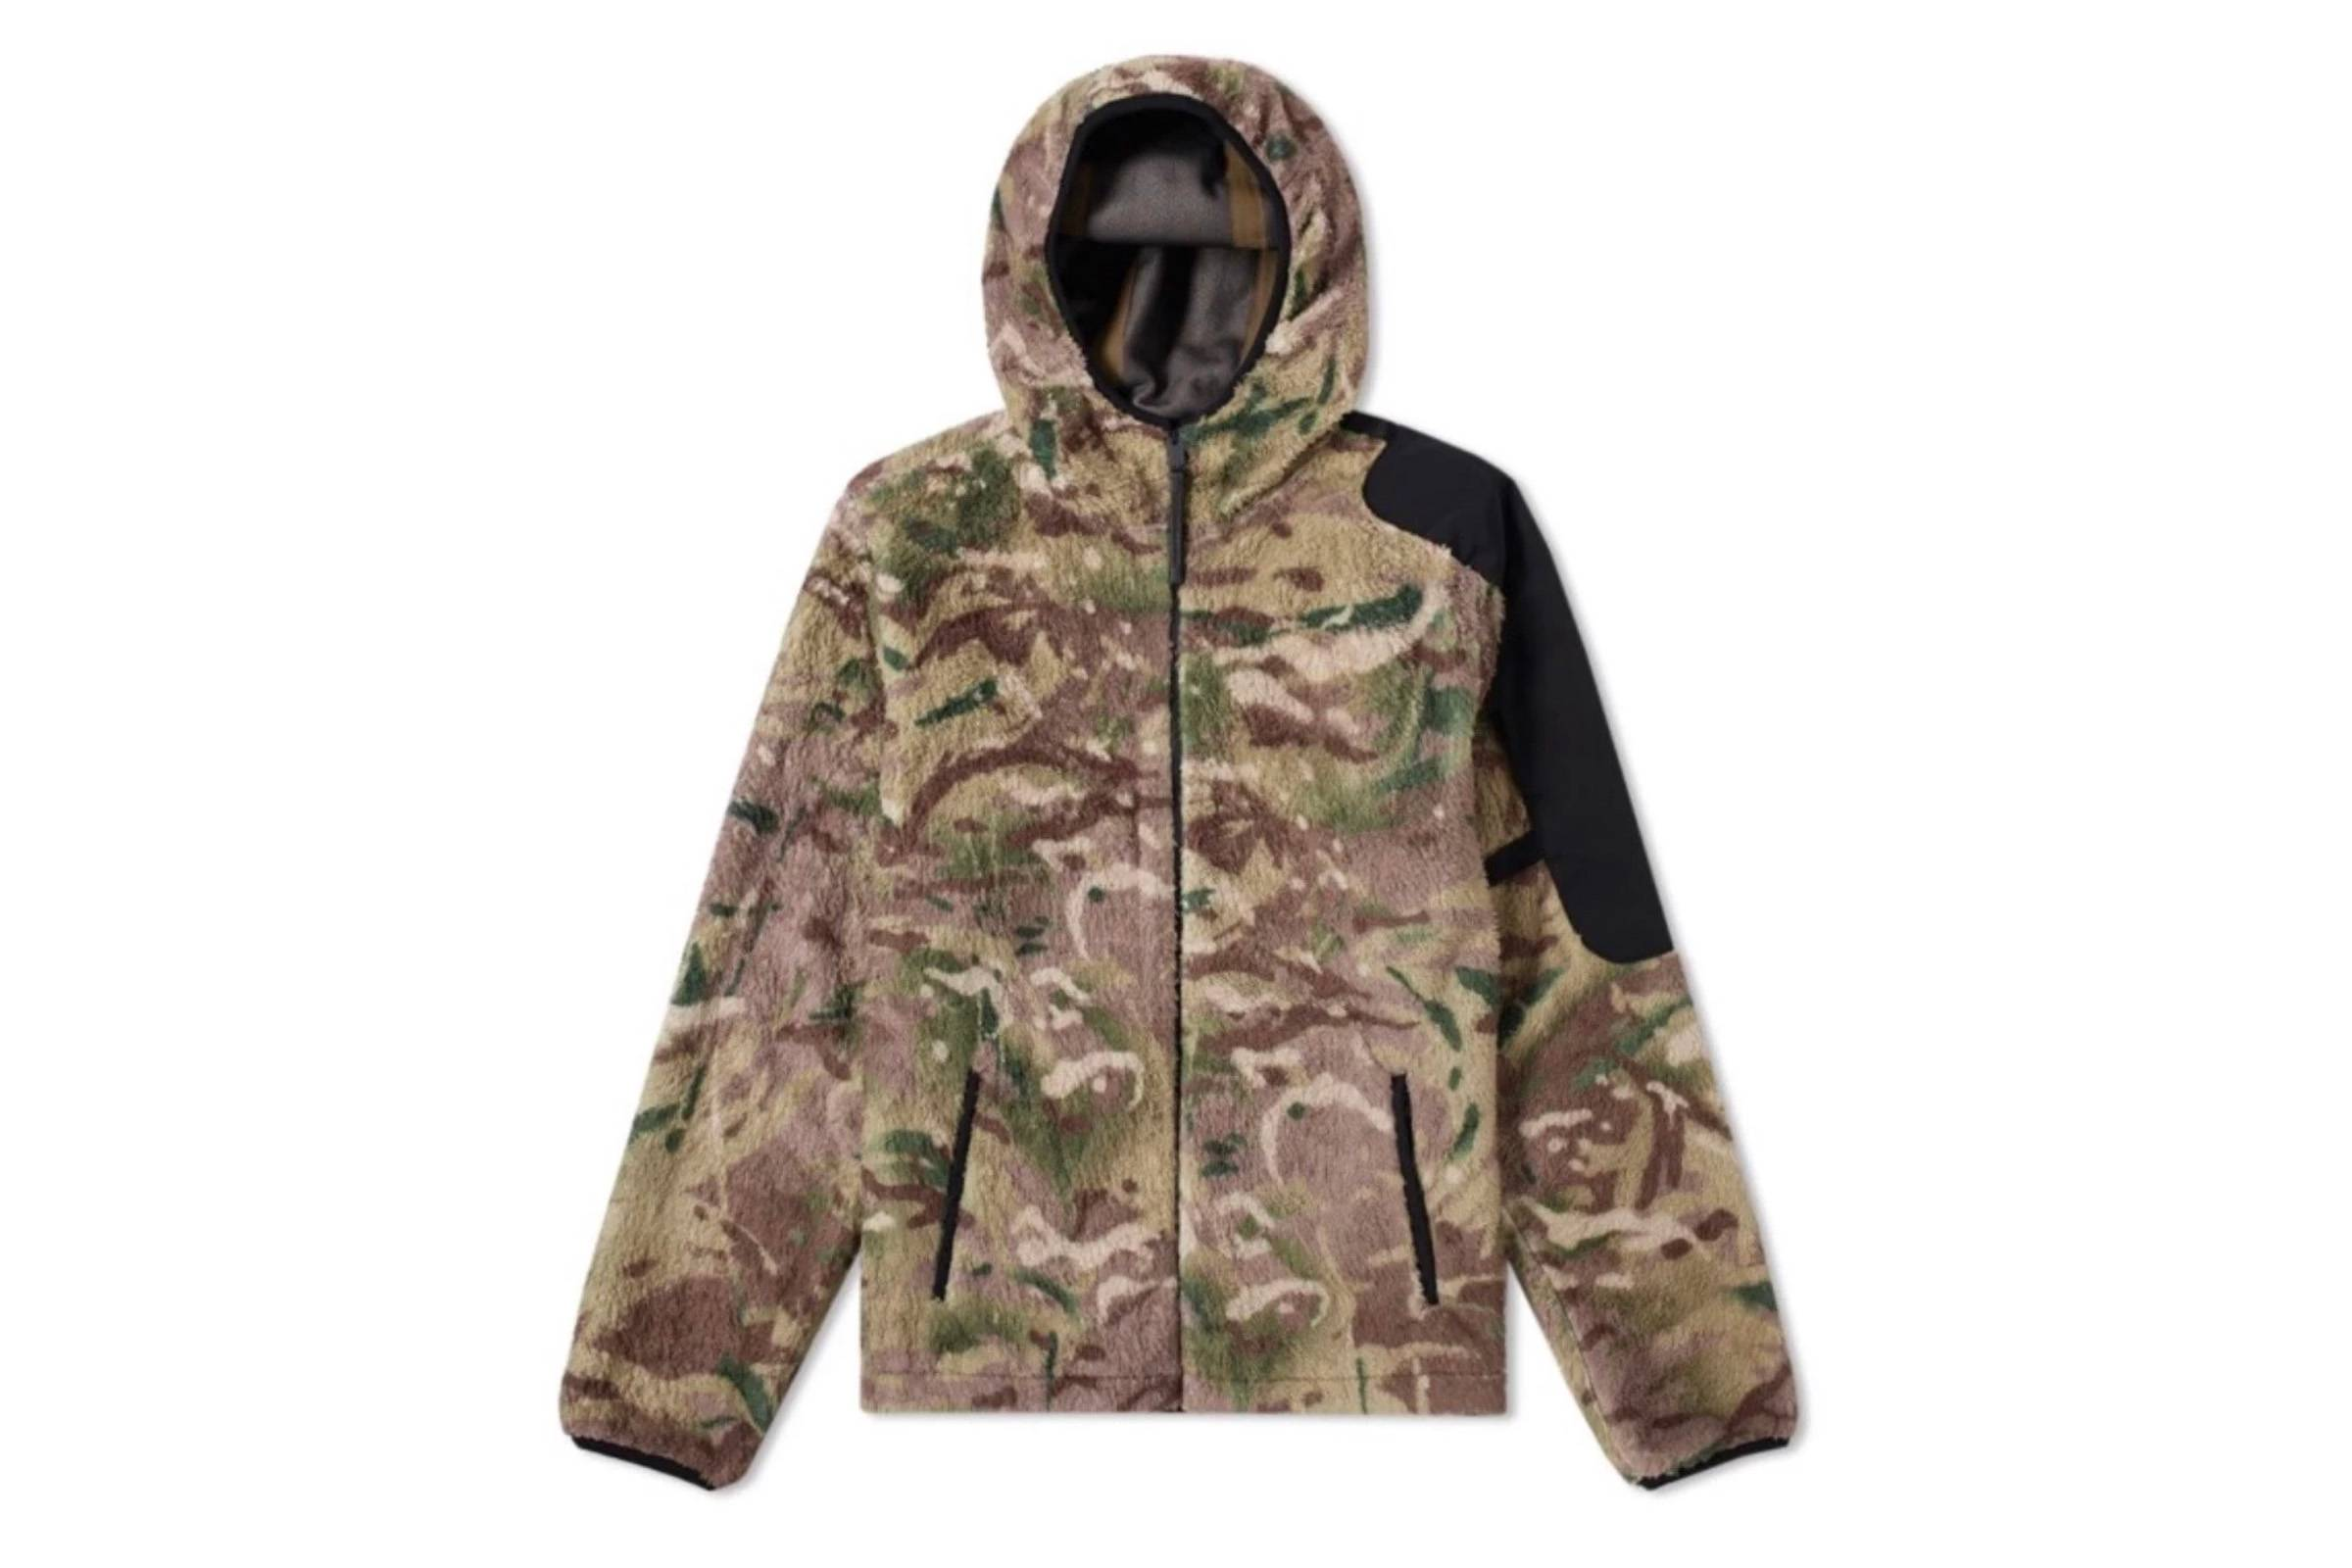 Alyx Marco Camo Polar Fleece